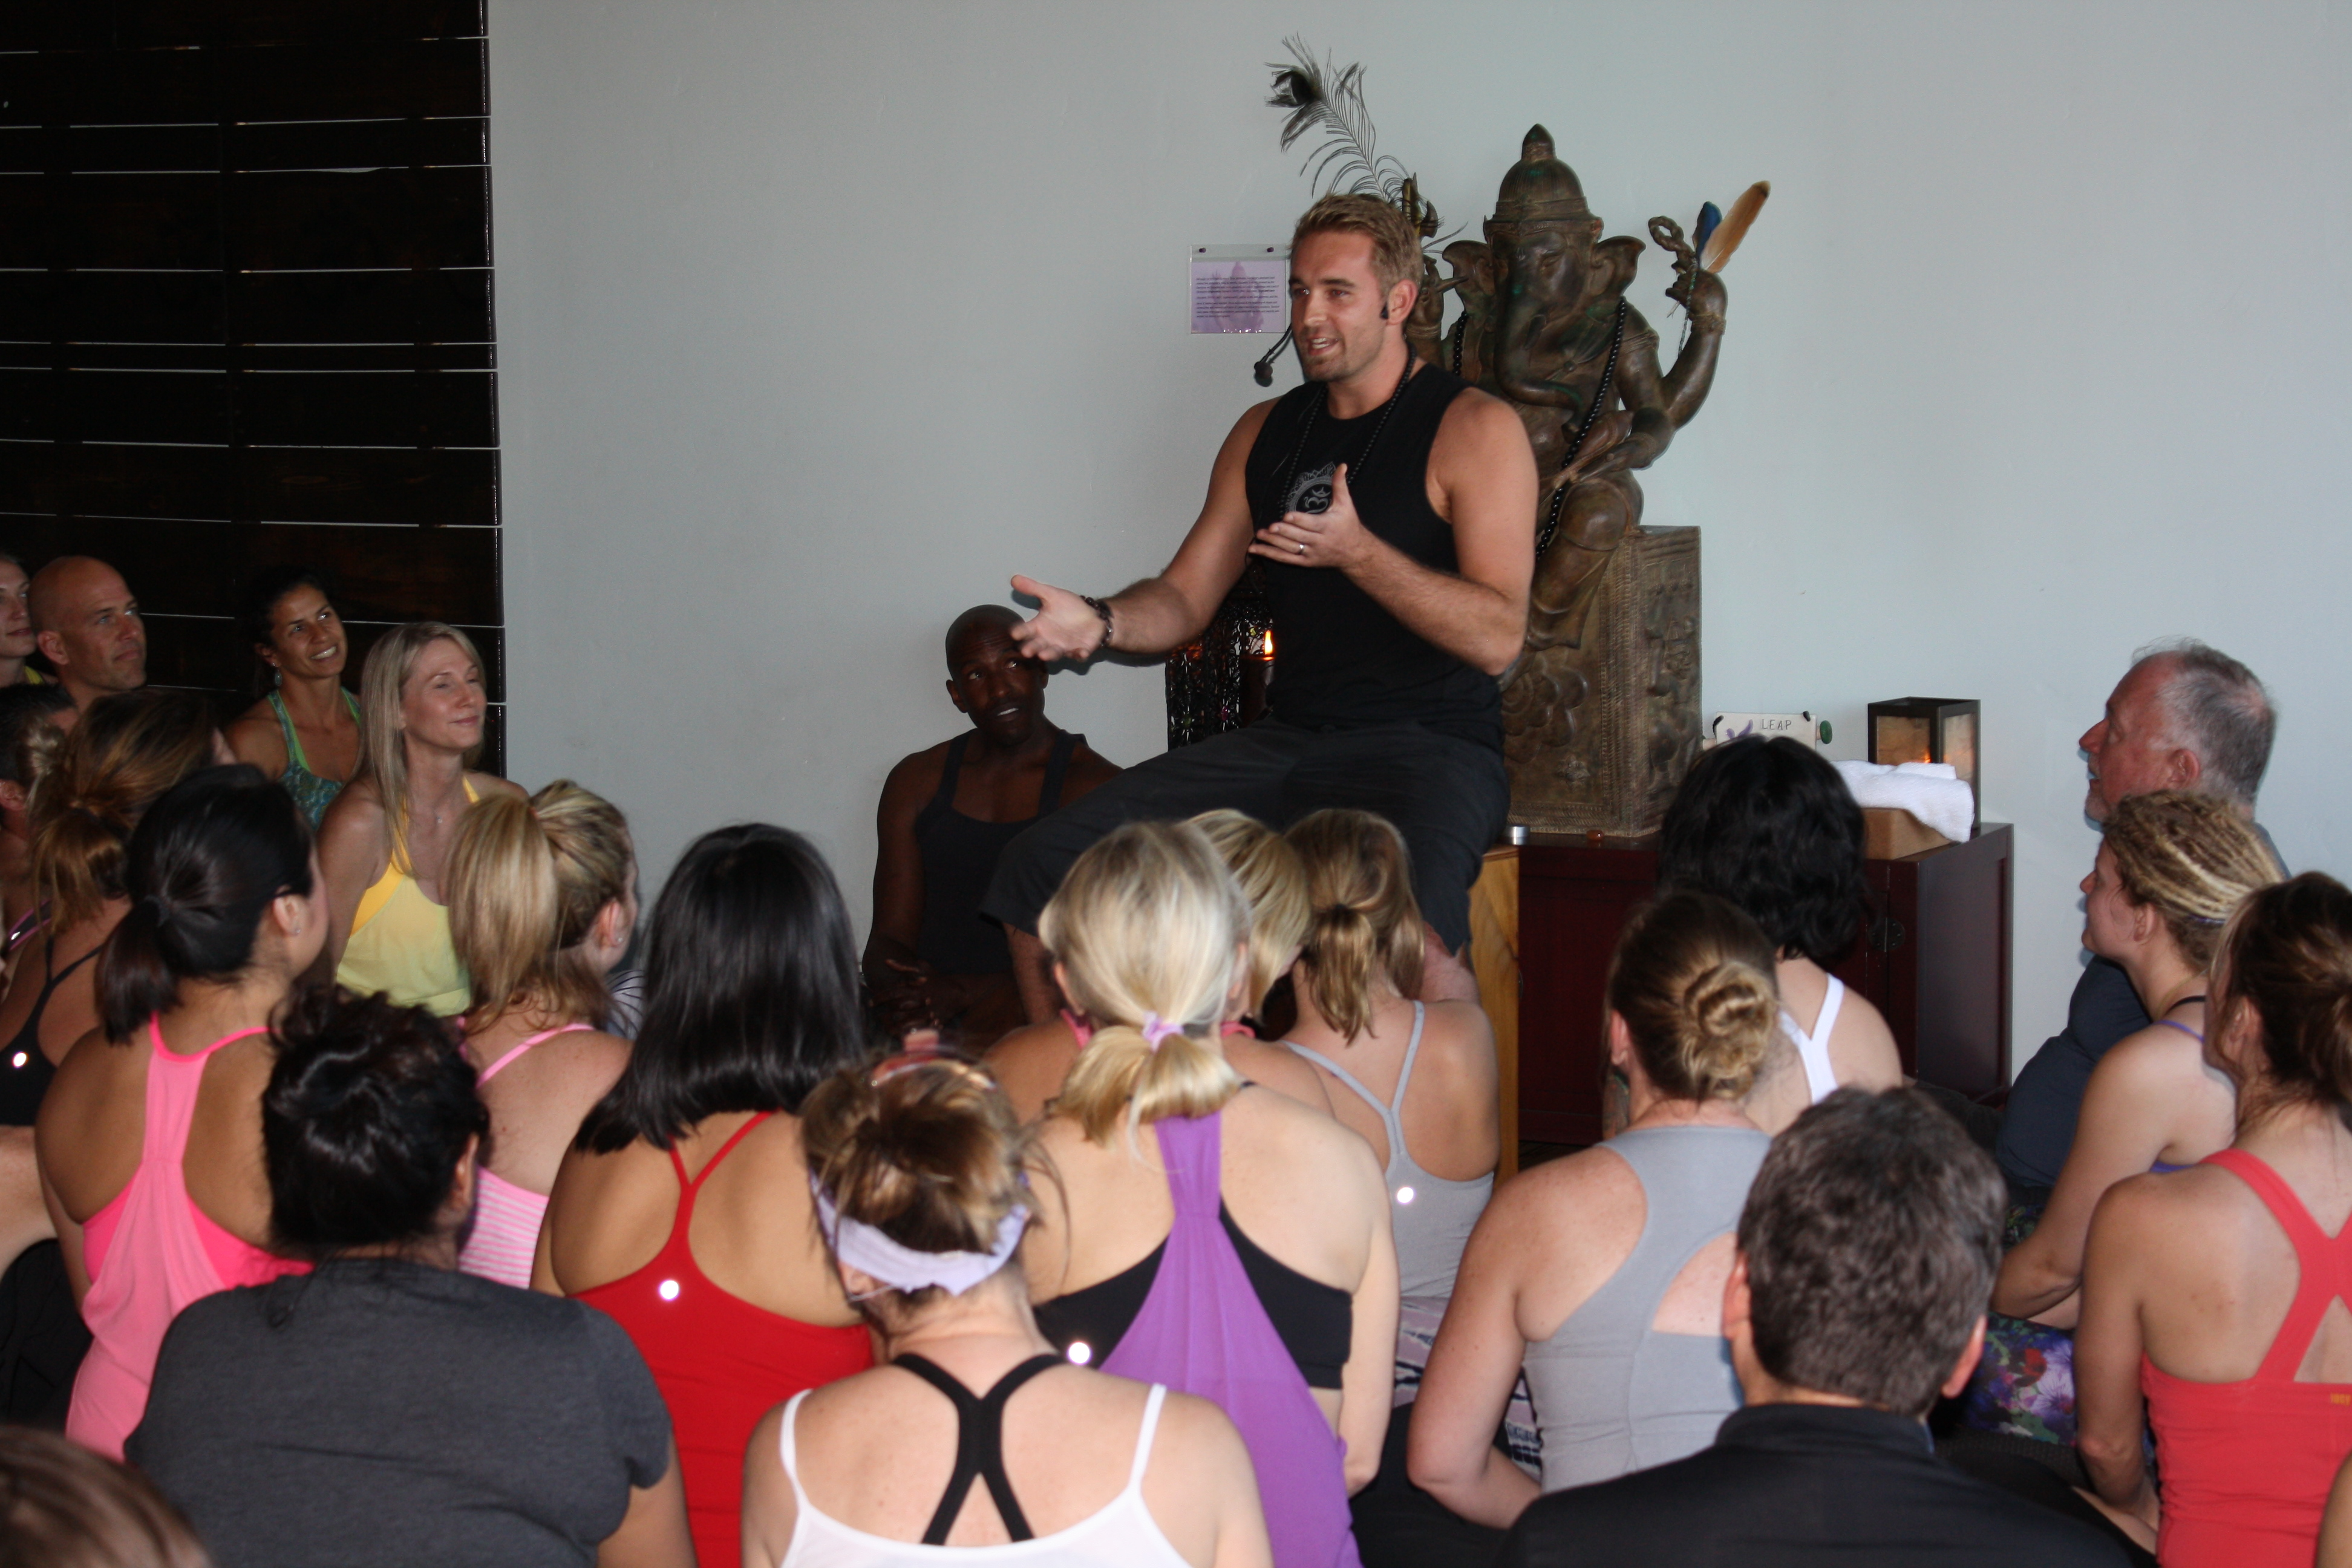 Tyler Landgale discusses the California Spirit Festival before kicking some serious asana!